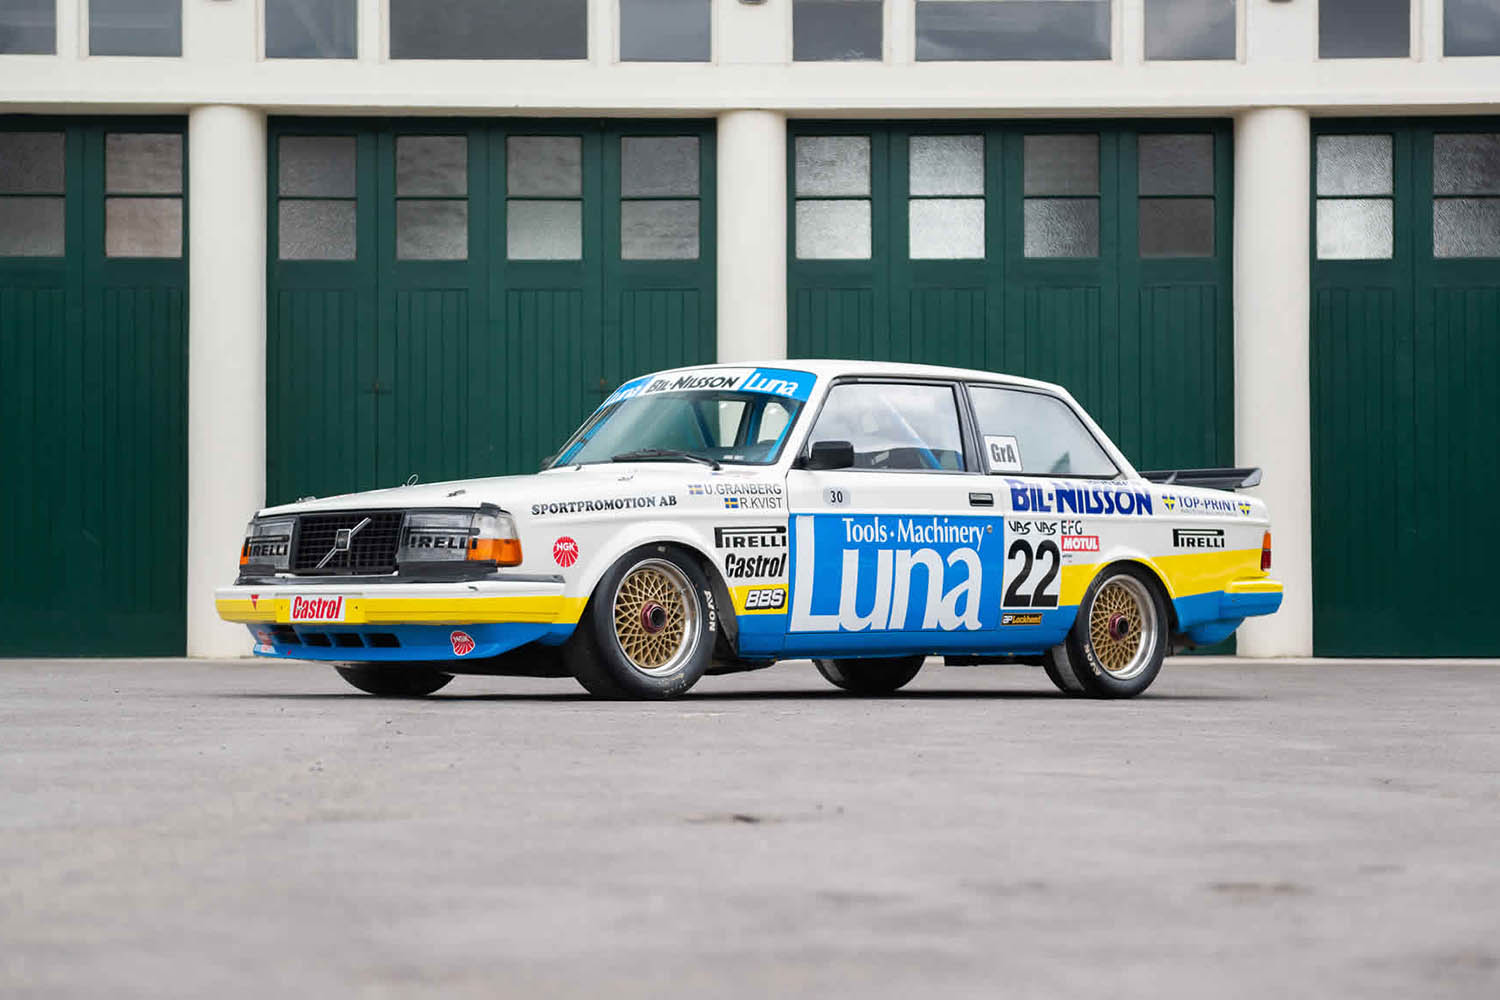 5d3183e2d7f4cddd174df9e6_22-for-sale-1984-volvo-240-turbo-group-abicester-heritage-oxfordshire-uk-sports-purpose-porsche-specialists.jpg